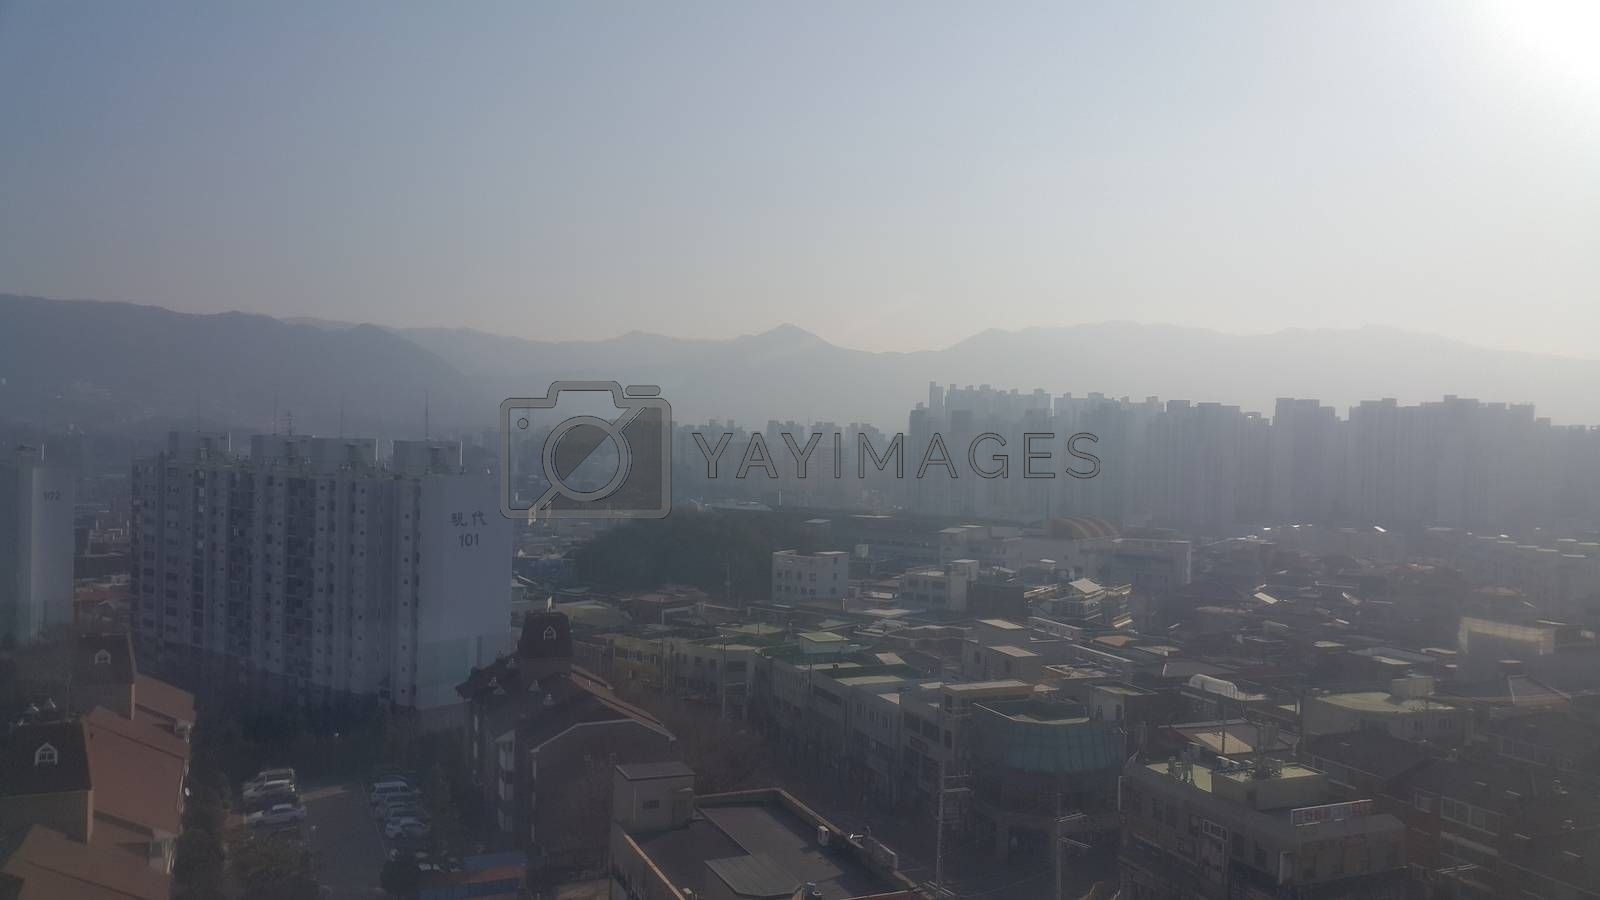 Royalty free image of Cityscape aerila view of developed country  by Photochowk